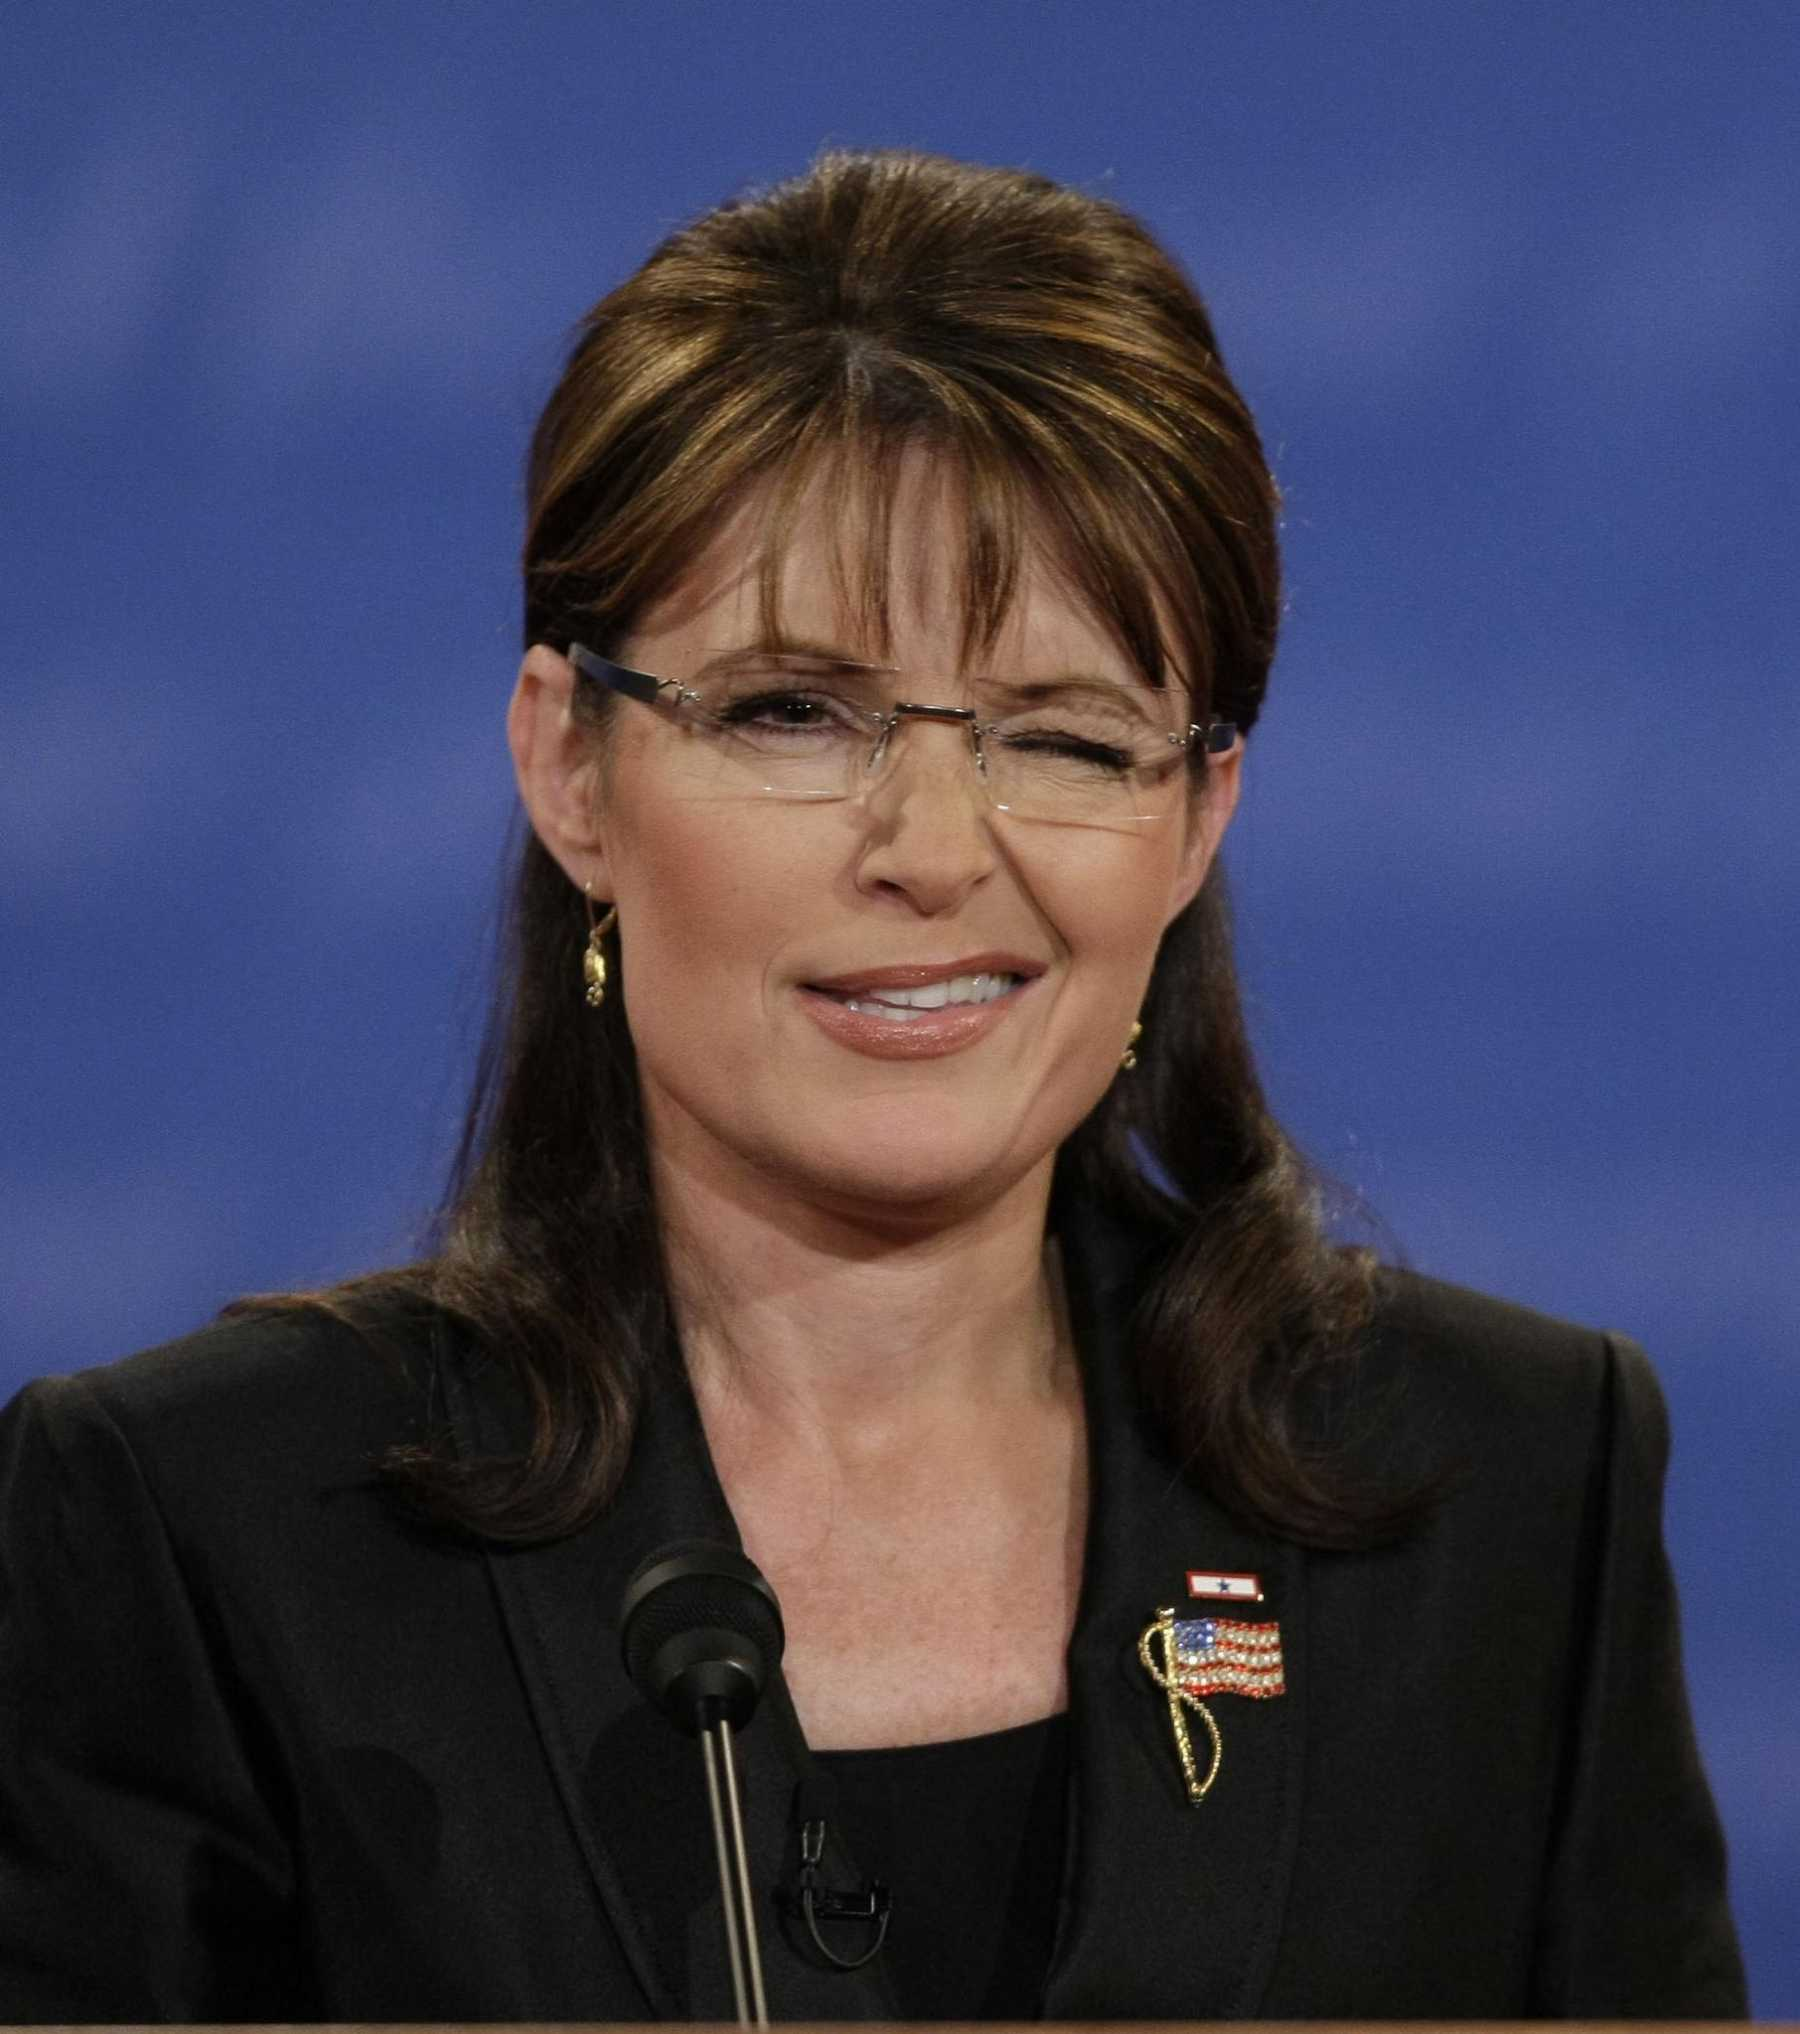 Sarah Palin: Everyone In The States Should